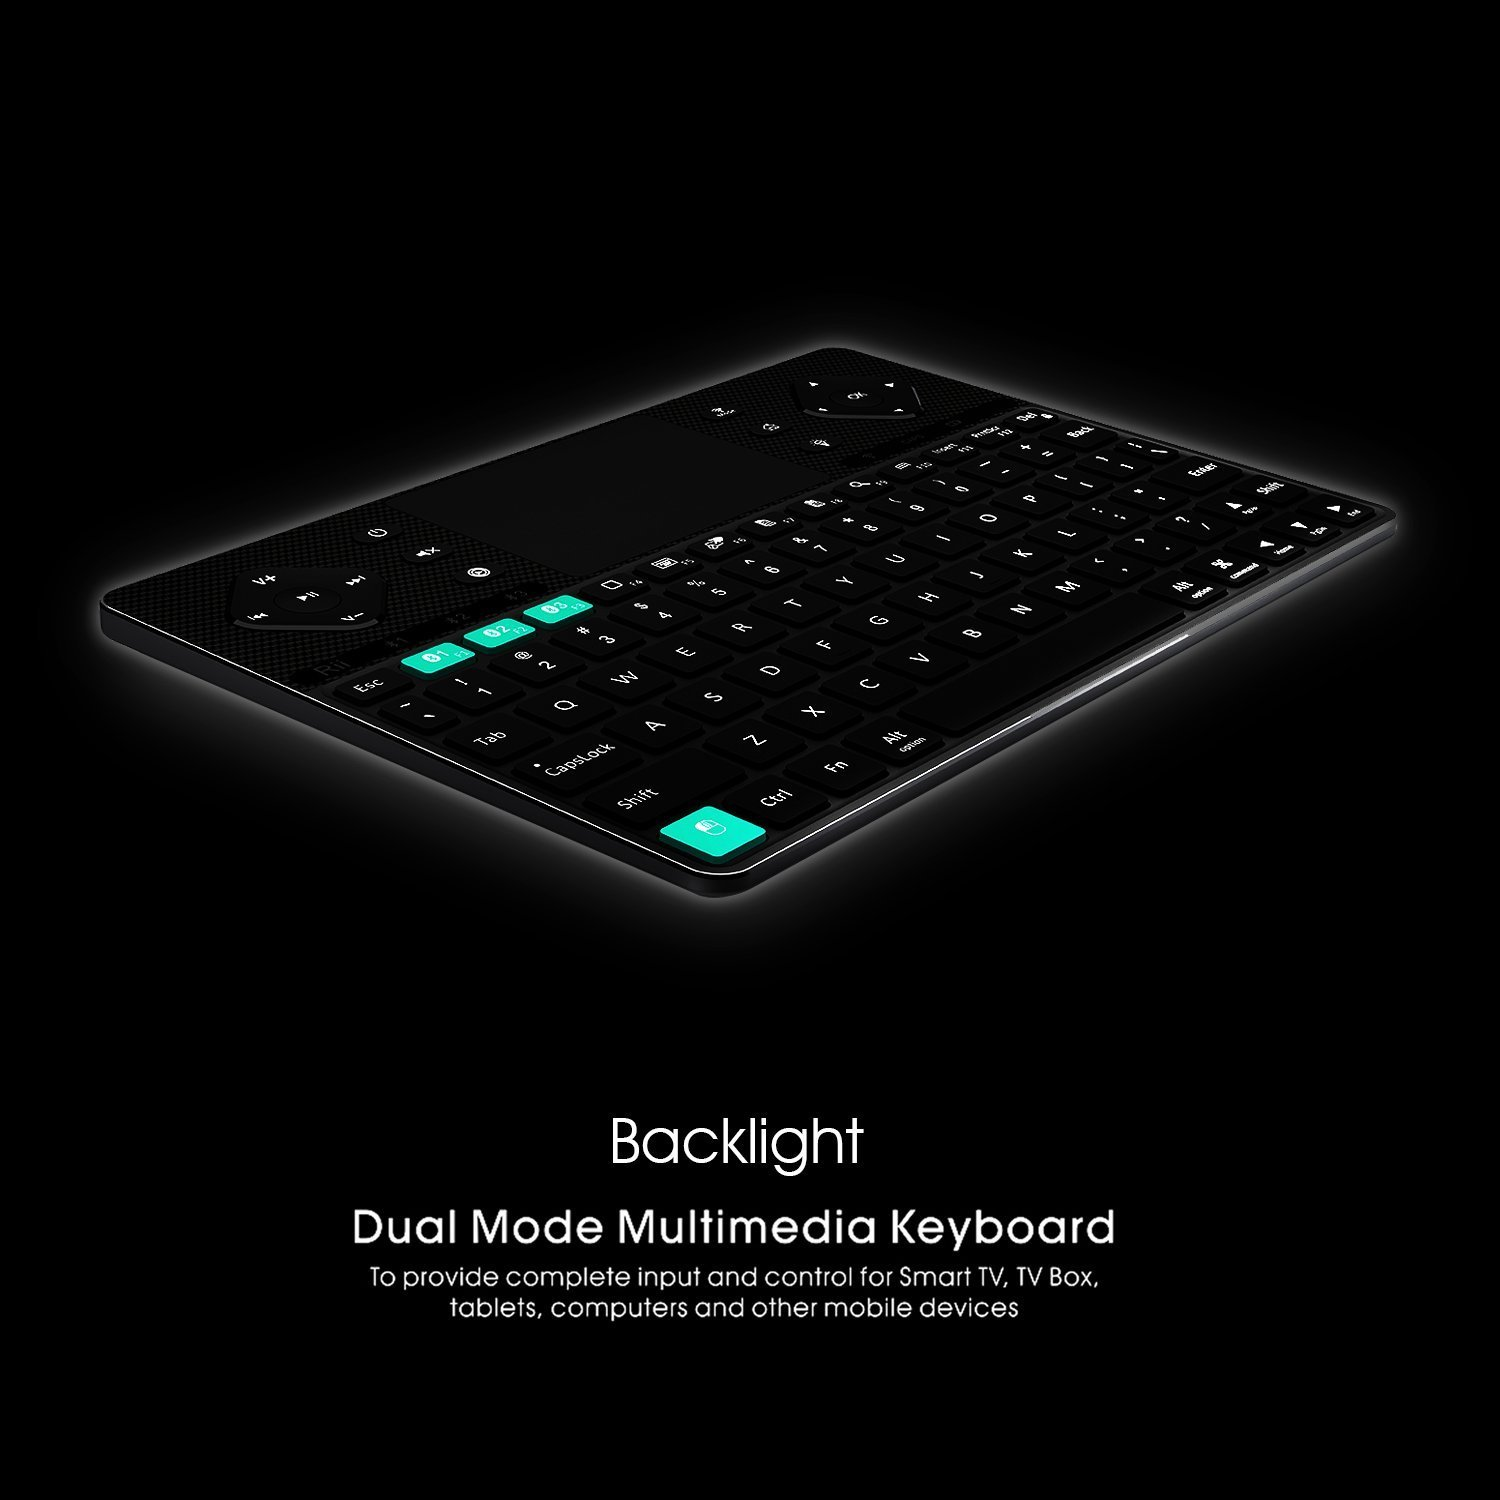 Rii (2018 New arrival) K16 Dual-mode Bluetooth &RF wireless Ultra Slim Rechargable Multimedia Backlit Keyboard With Touchpad Mouse And Aluminium Cover For PC,Tablets, Smart TV,Android TV Box,Windows by Rii (Image #2)